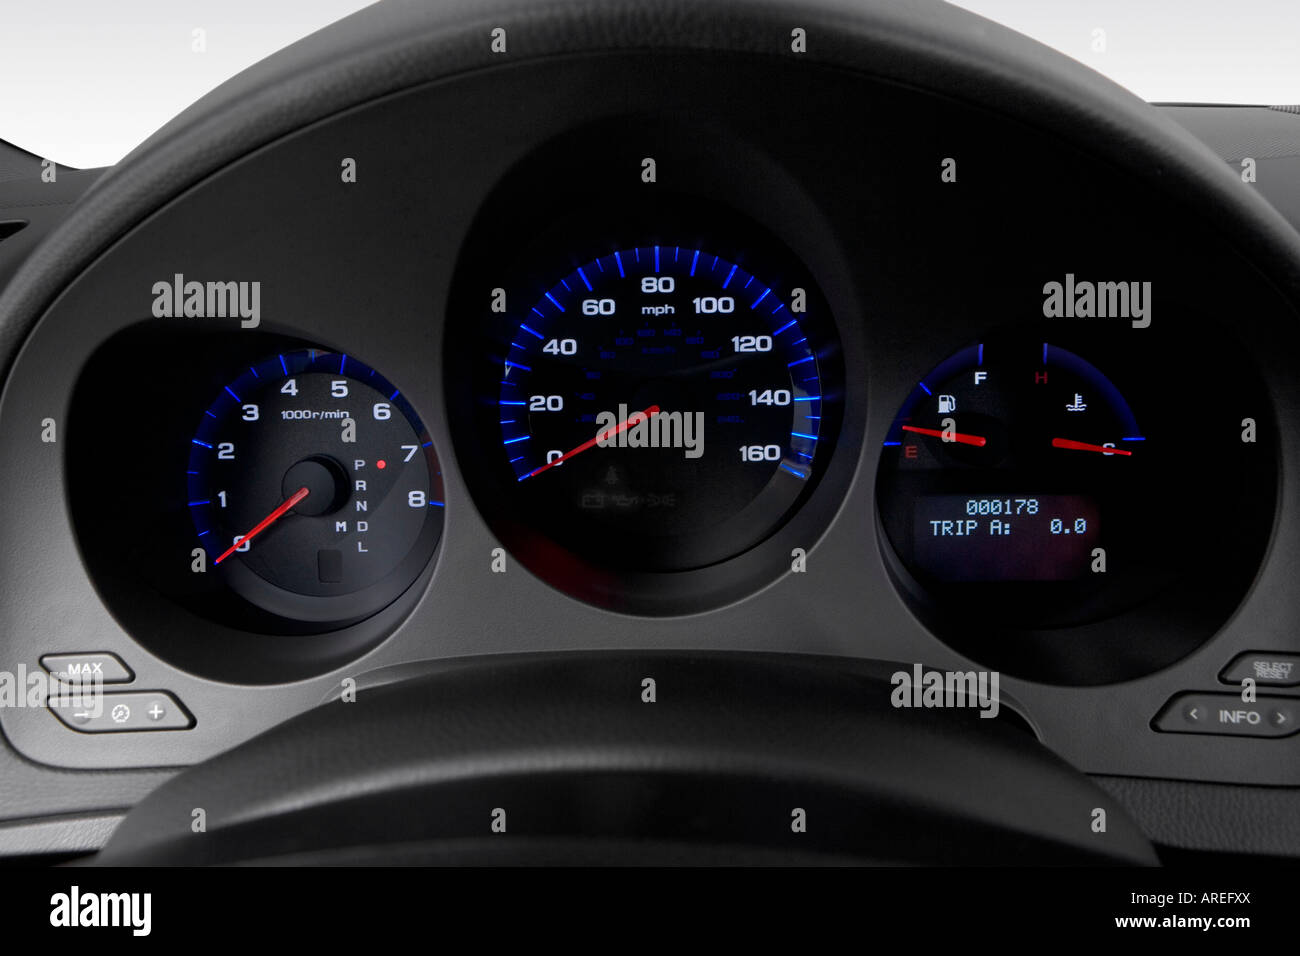 Acura tl 2006 2006 acura tl in black speedometer tachometer stock photo